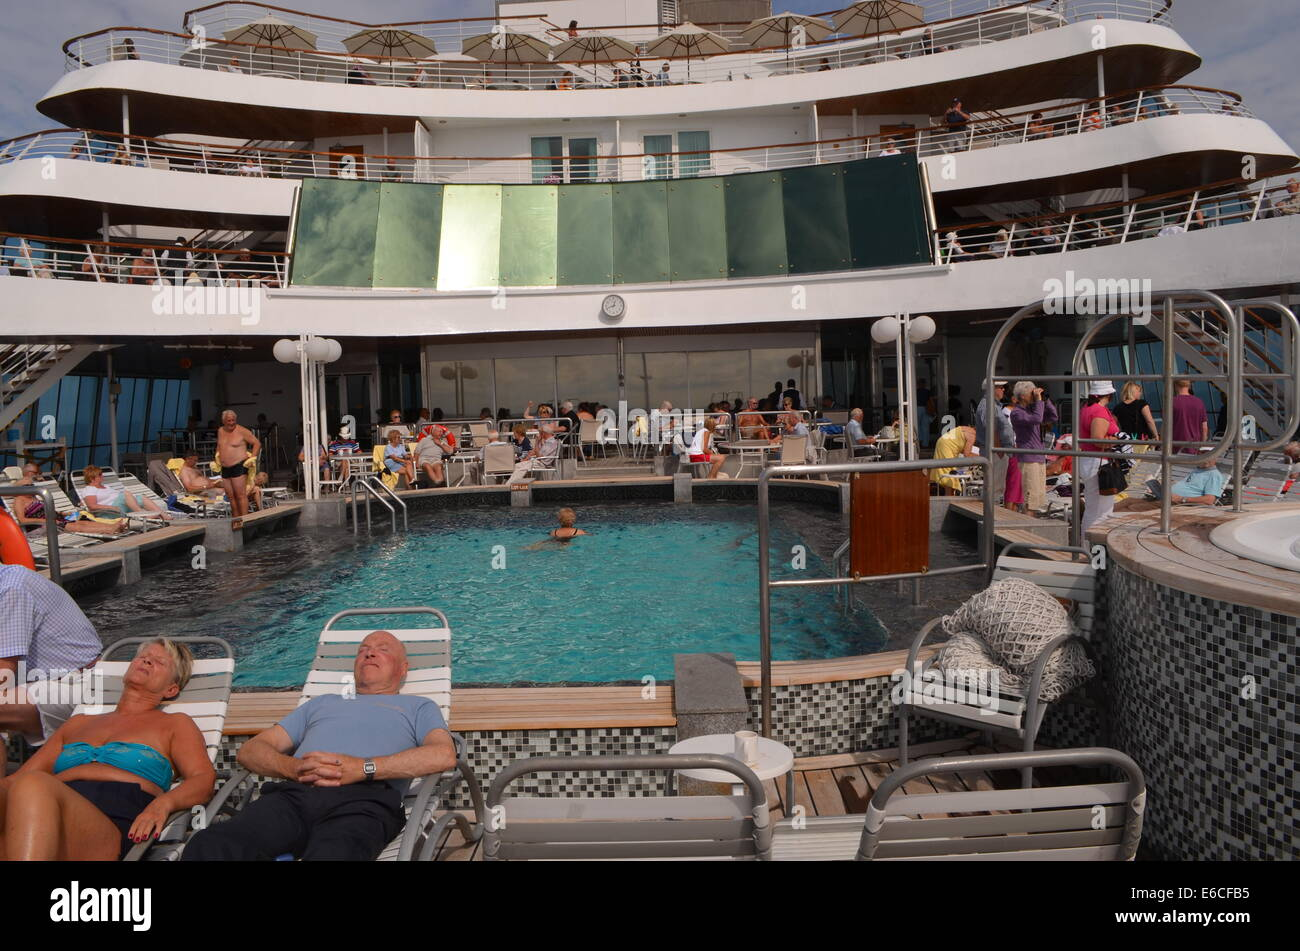 The Swimming Pool On Board The Ss Balmoral On Fred Olsen Ship Stock Photo Royalty Free Image